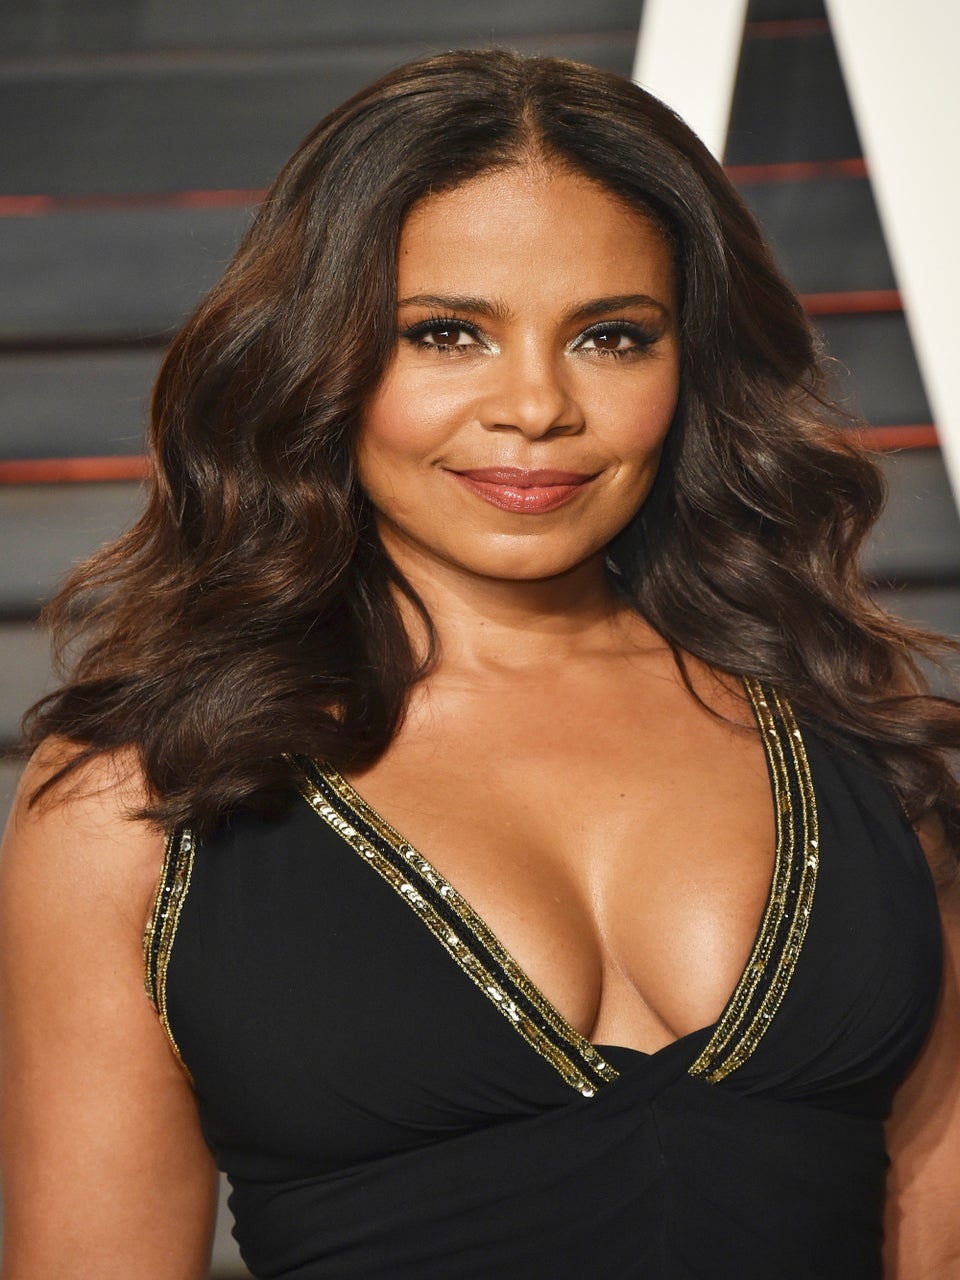 Who Knew Sanaa Lathan Could Sing?! The Actress Wows On Instagram With 'Jingle Bells'